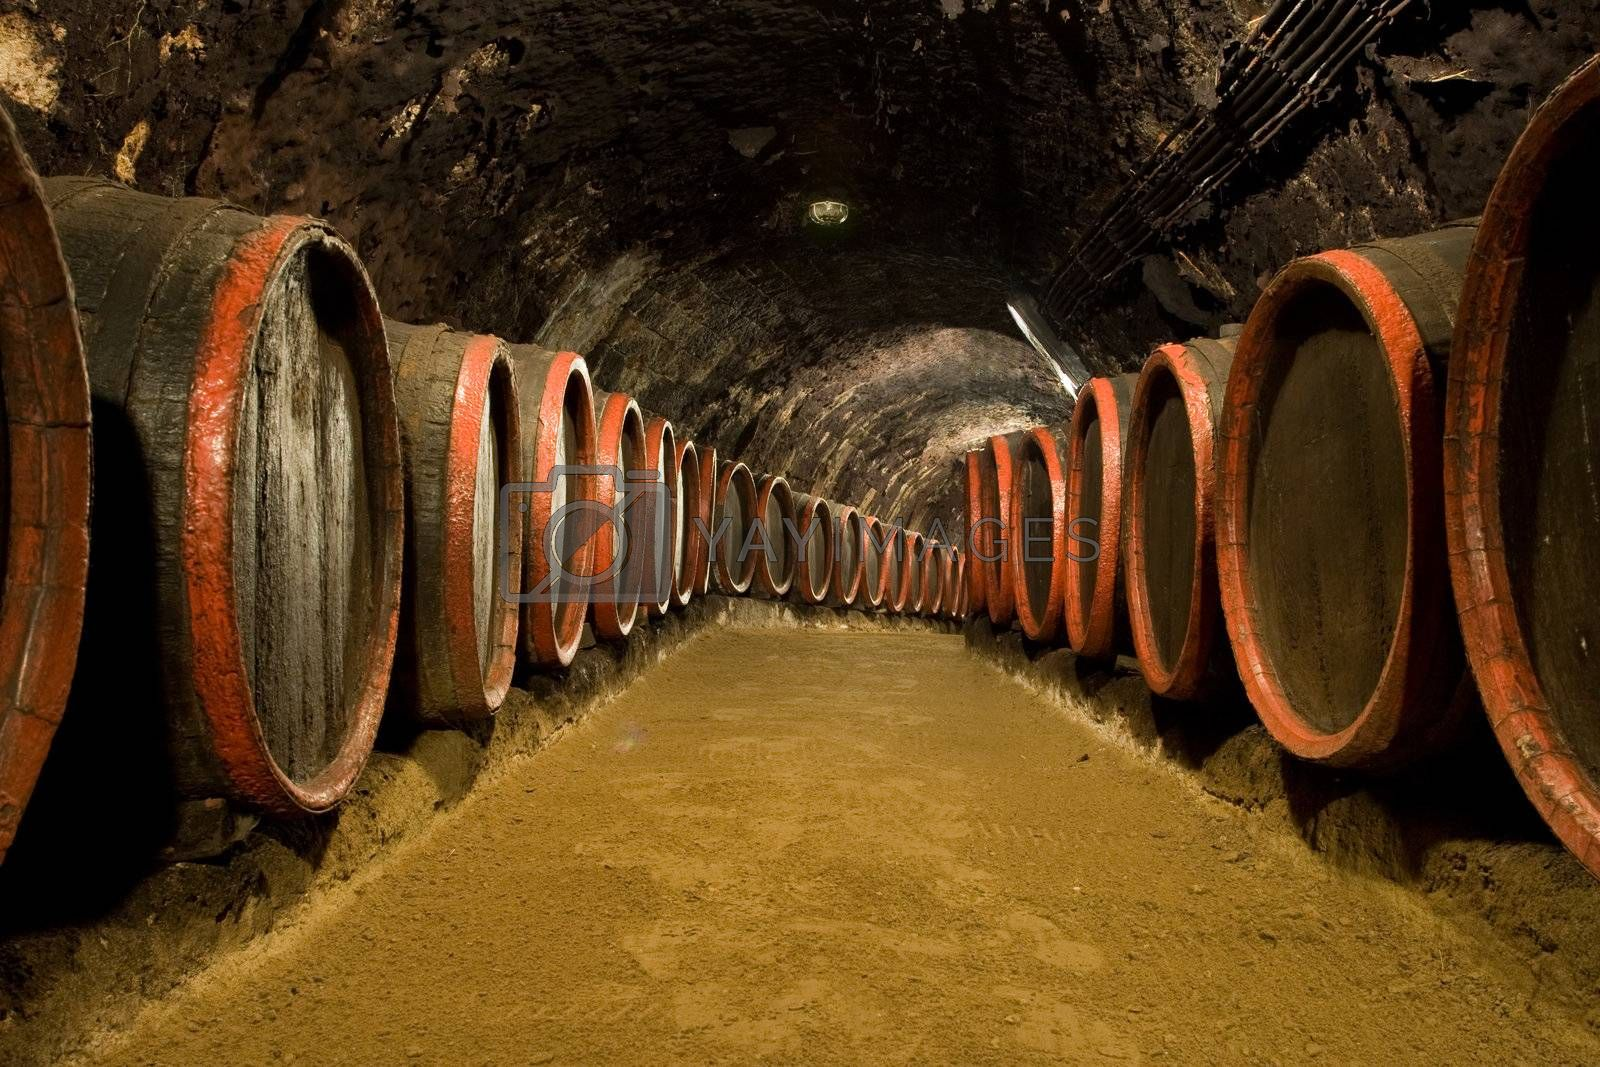 Old wine barrels are stored in winery cellar